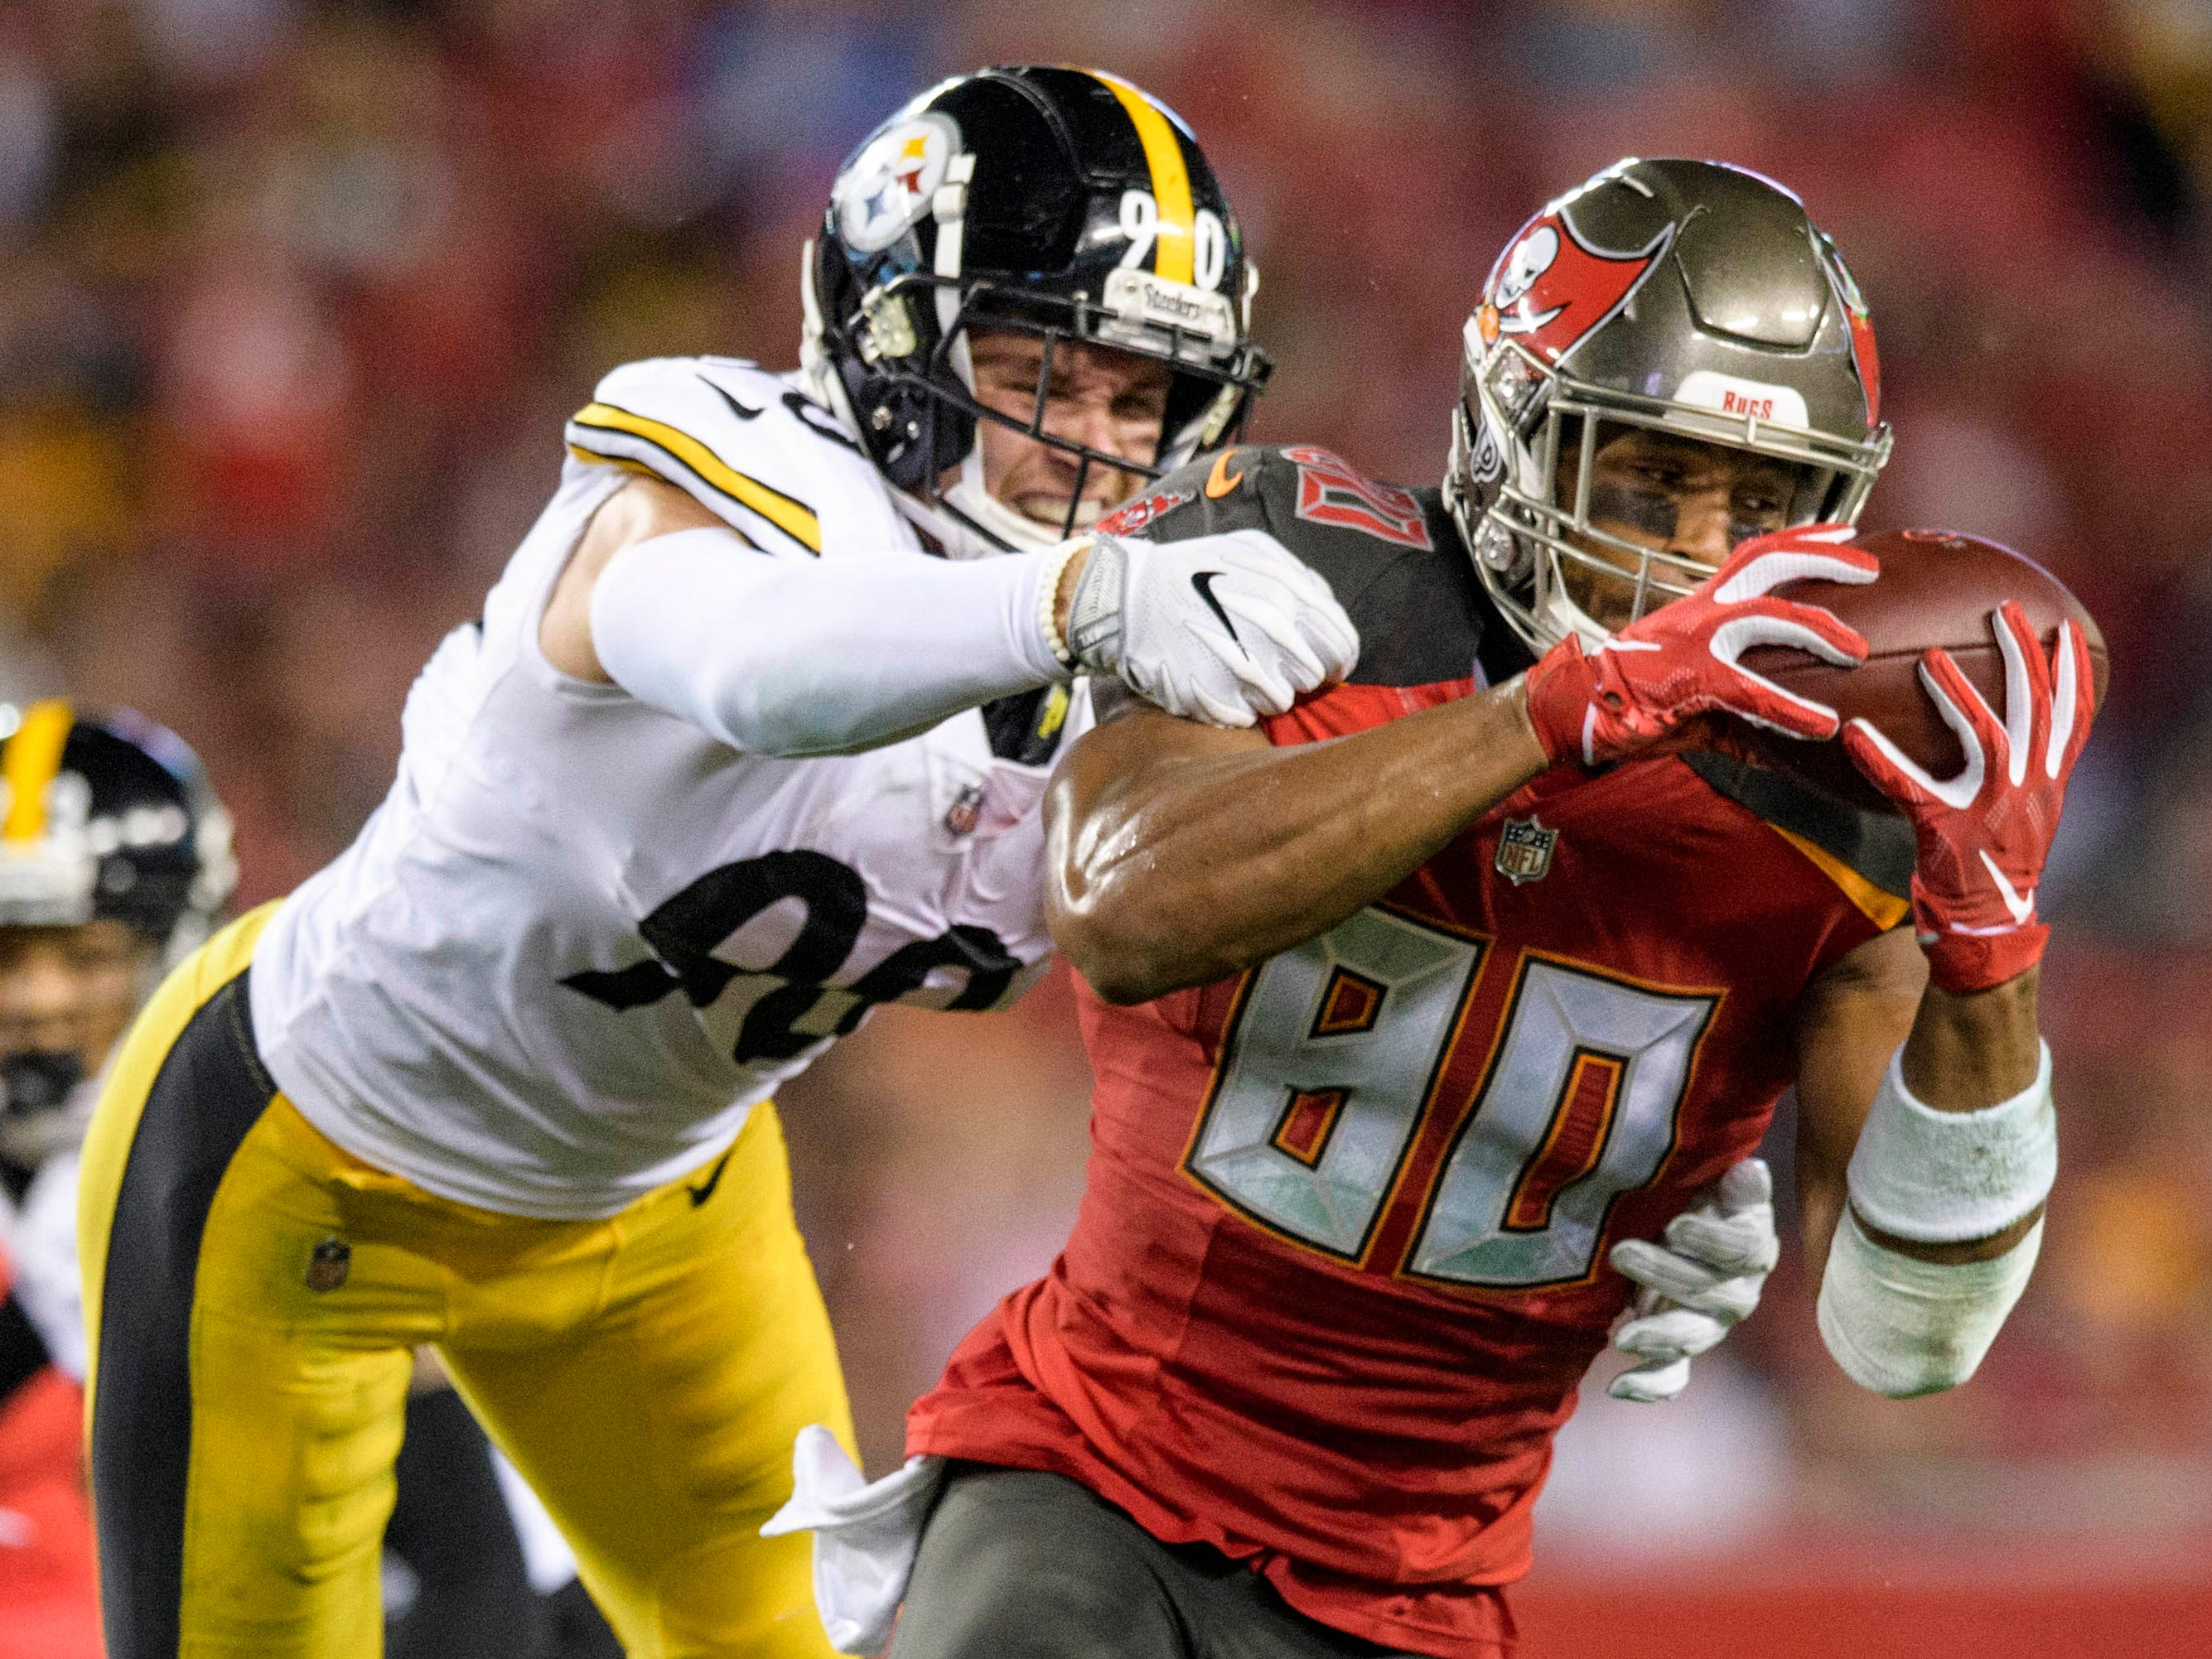 Tampa Bay Buccaneers tight end O.J. Howard catches the ball in front of Pittsburgh Steelers linebacker T.J. Watt during the first half at Raymond James Stadium.